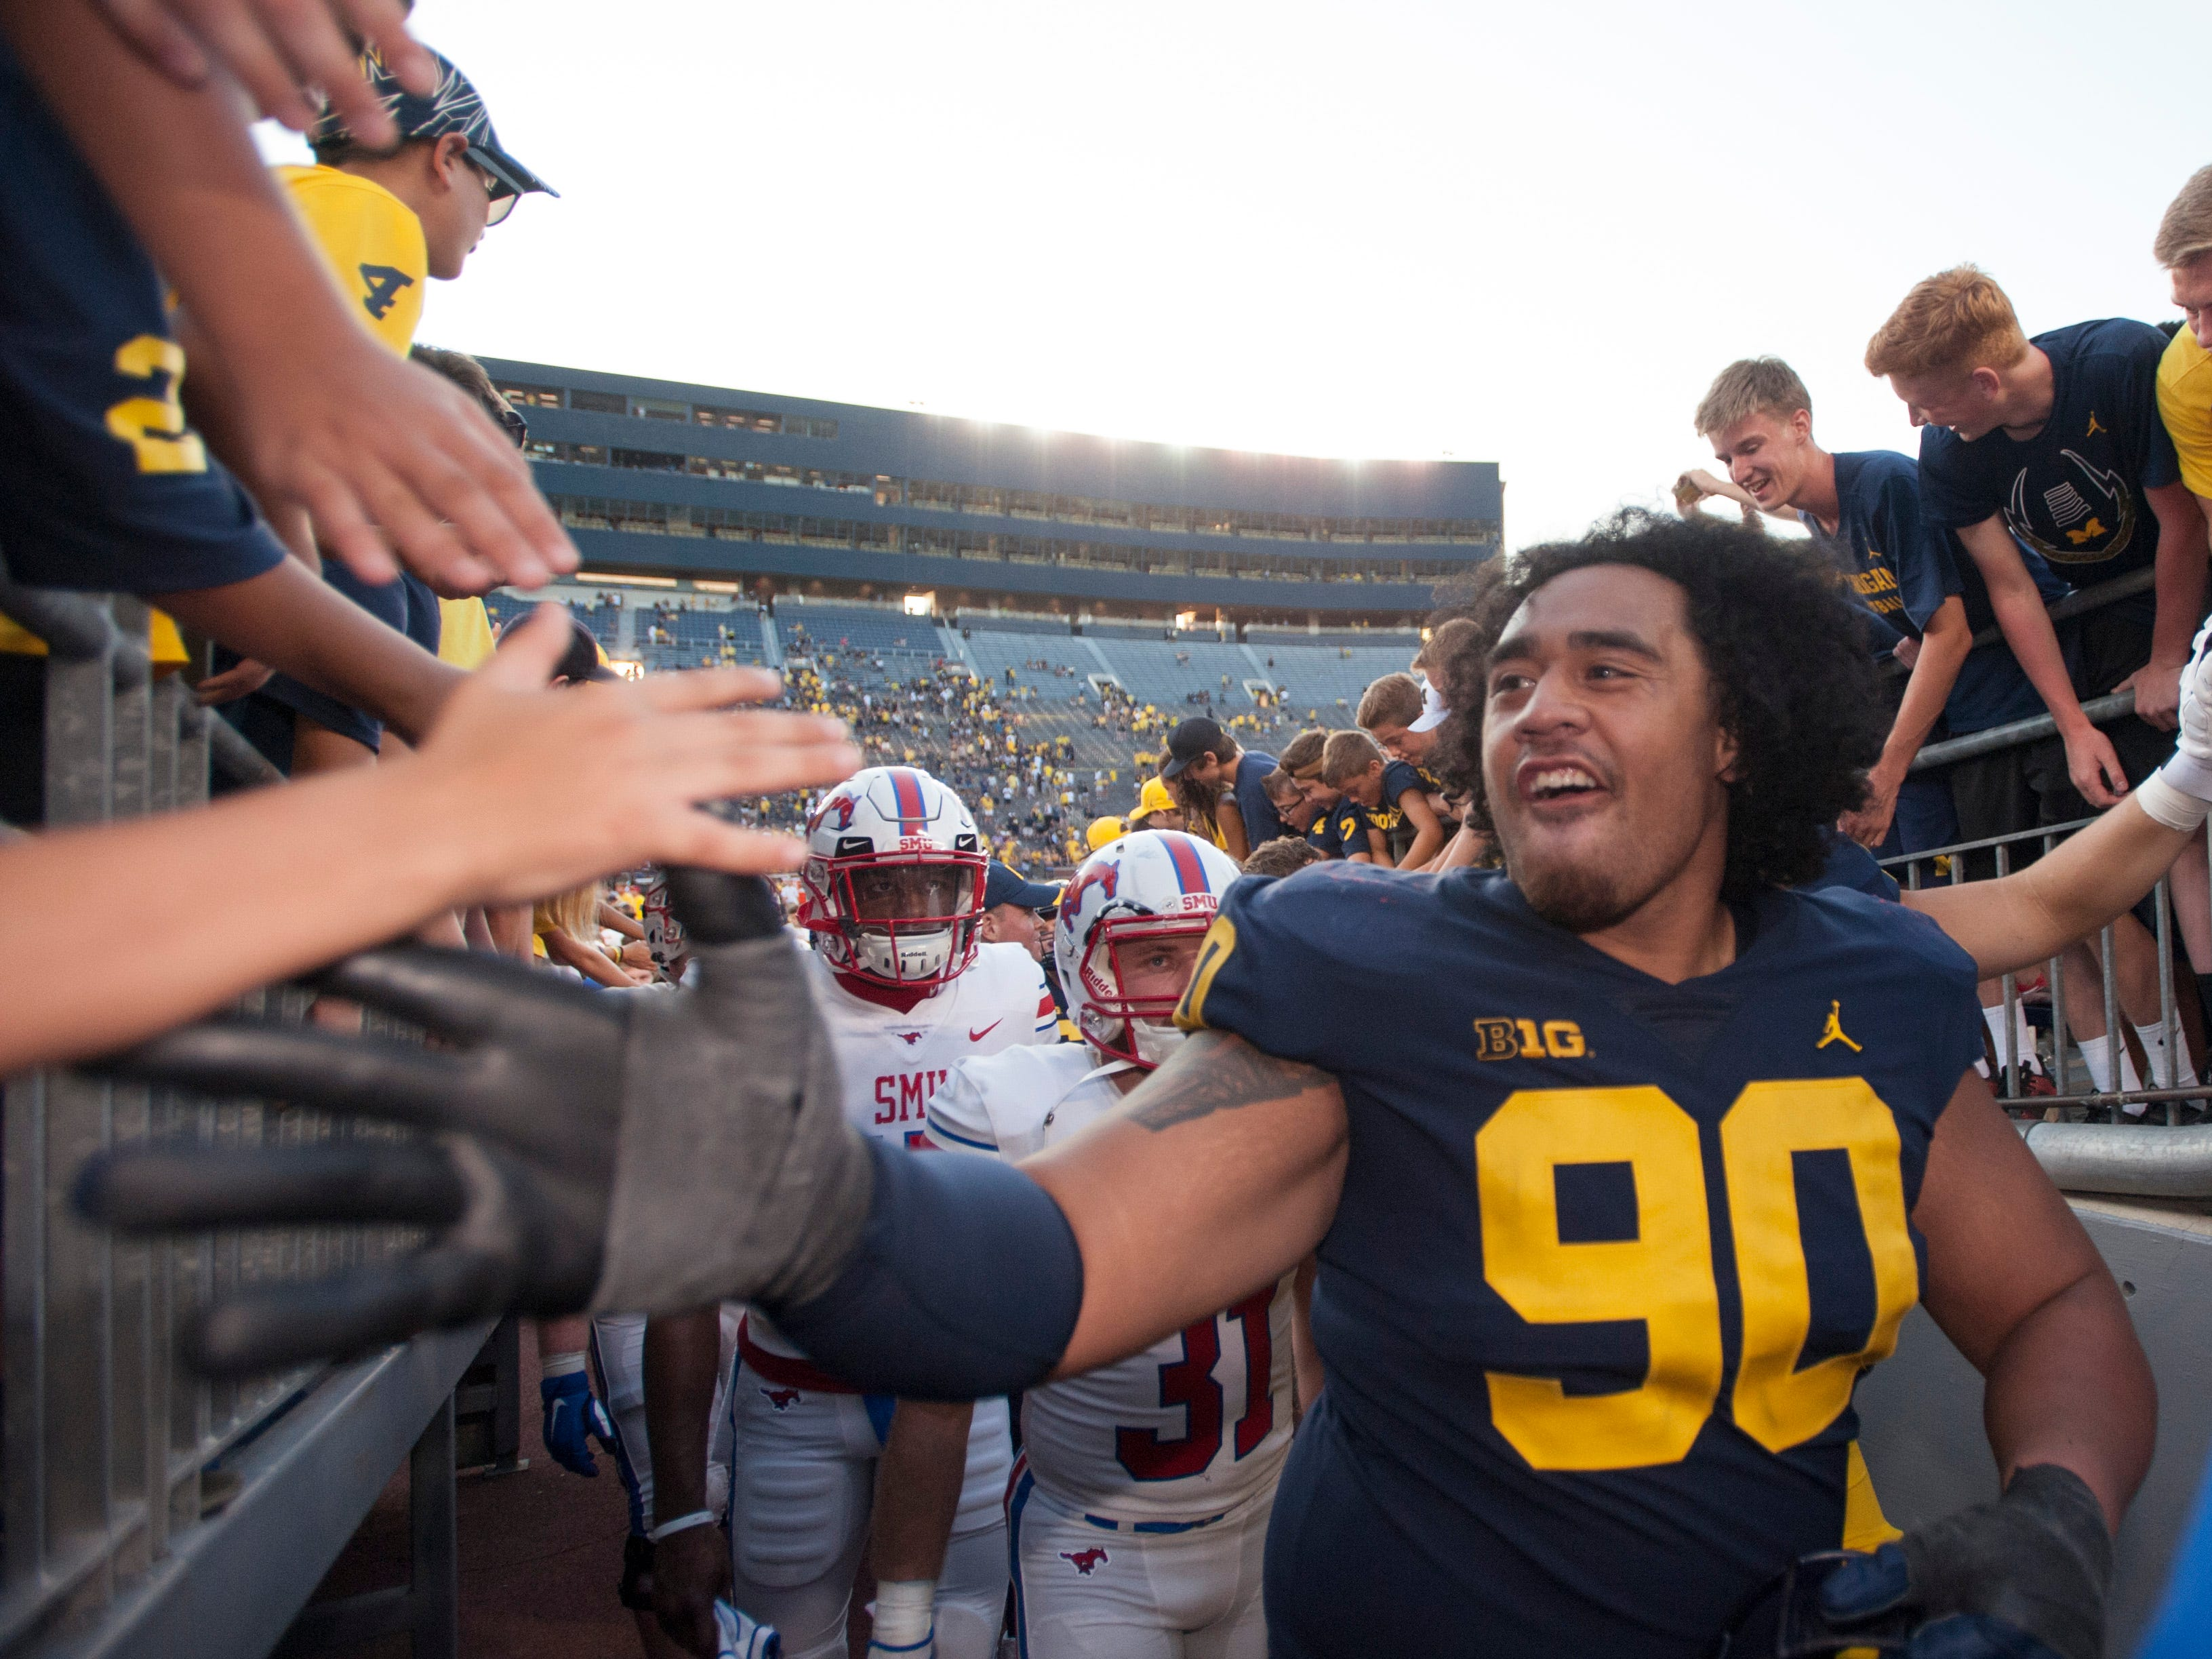 Michigan defensive lineman Bryan Mone high fives fans as they head up the Michigan Stadium tunnel after the game.